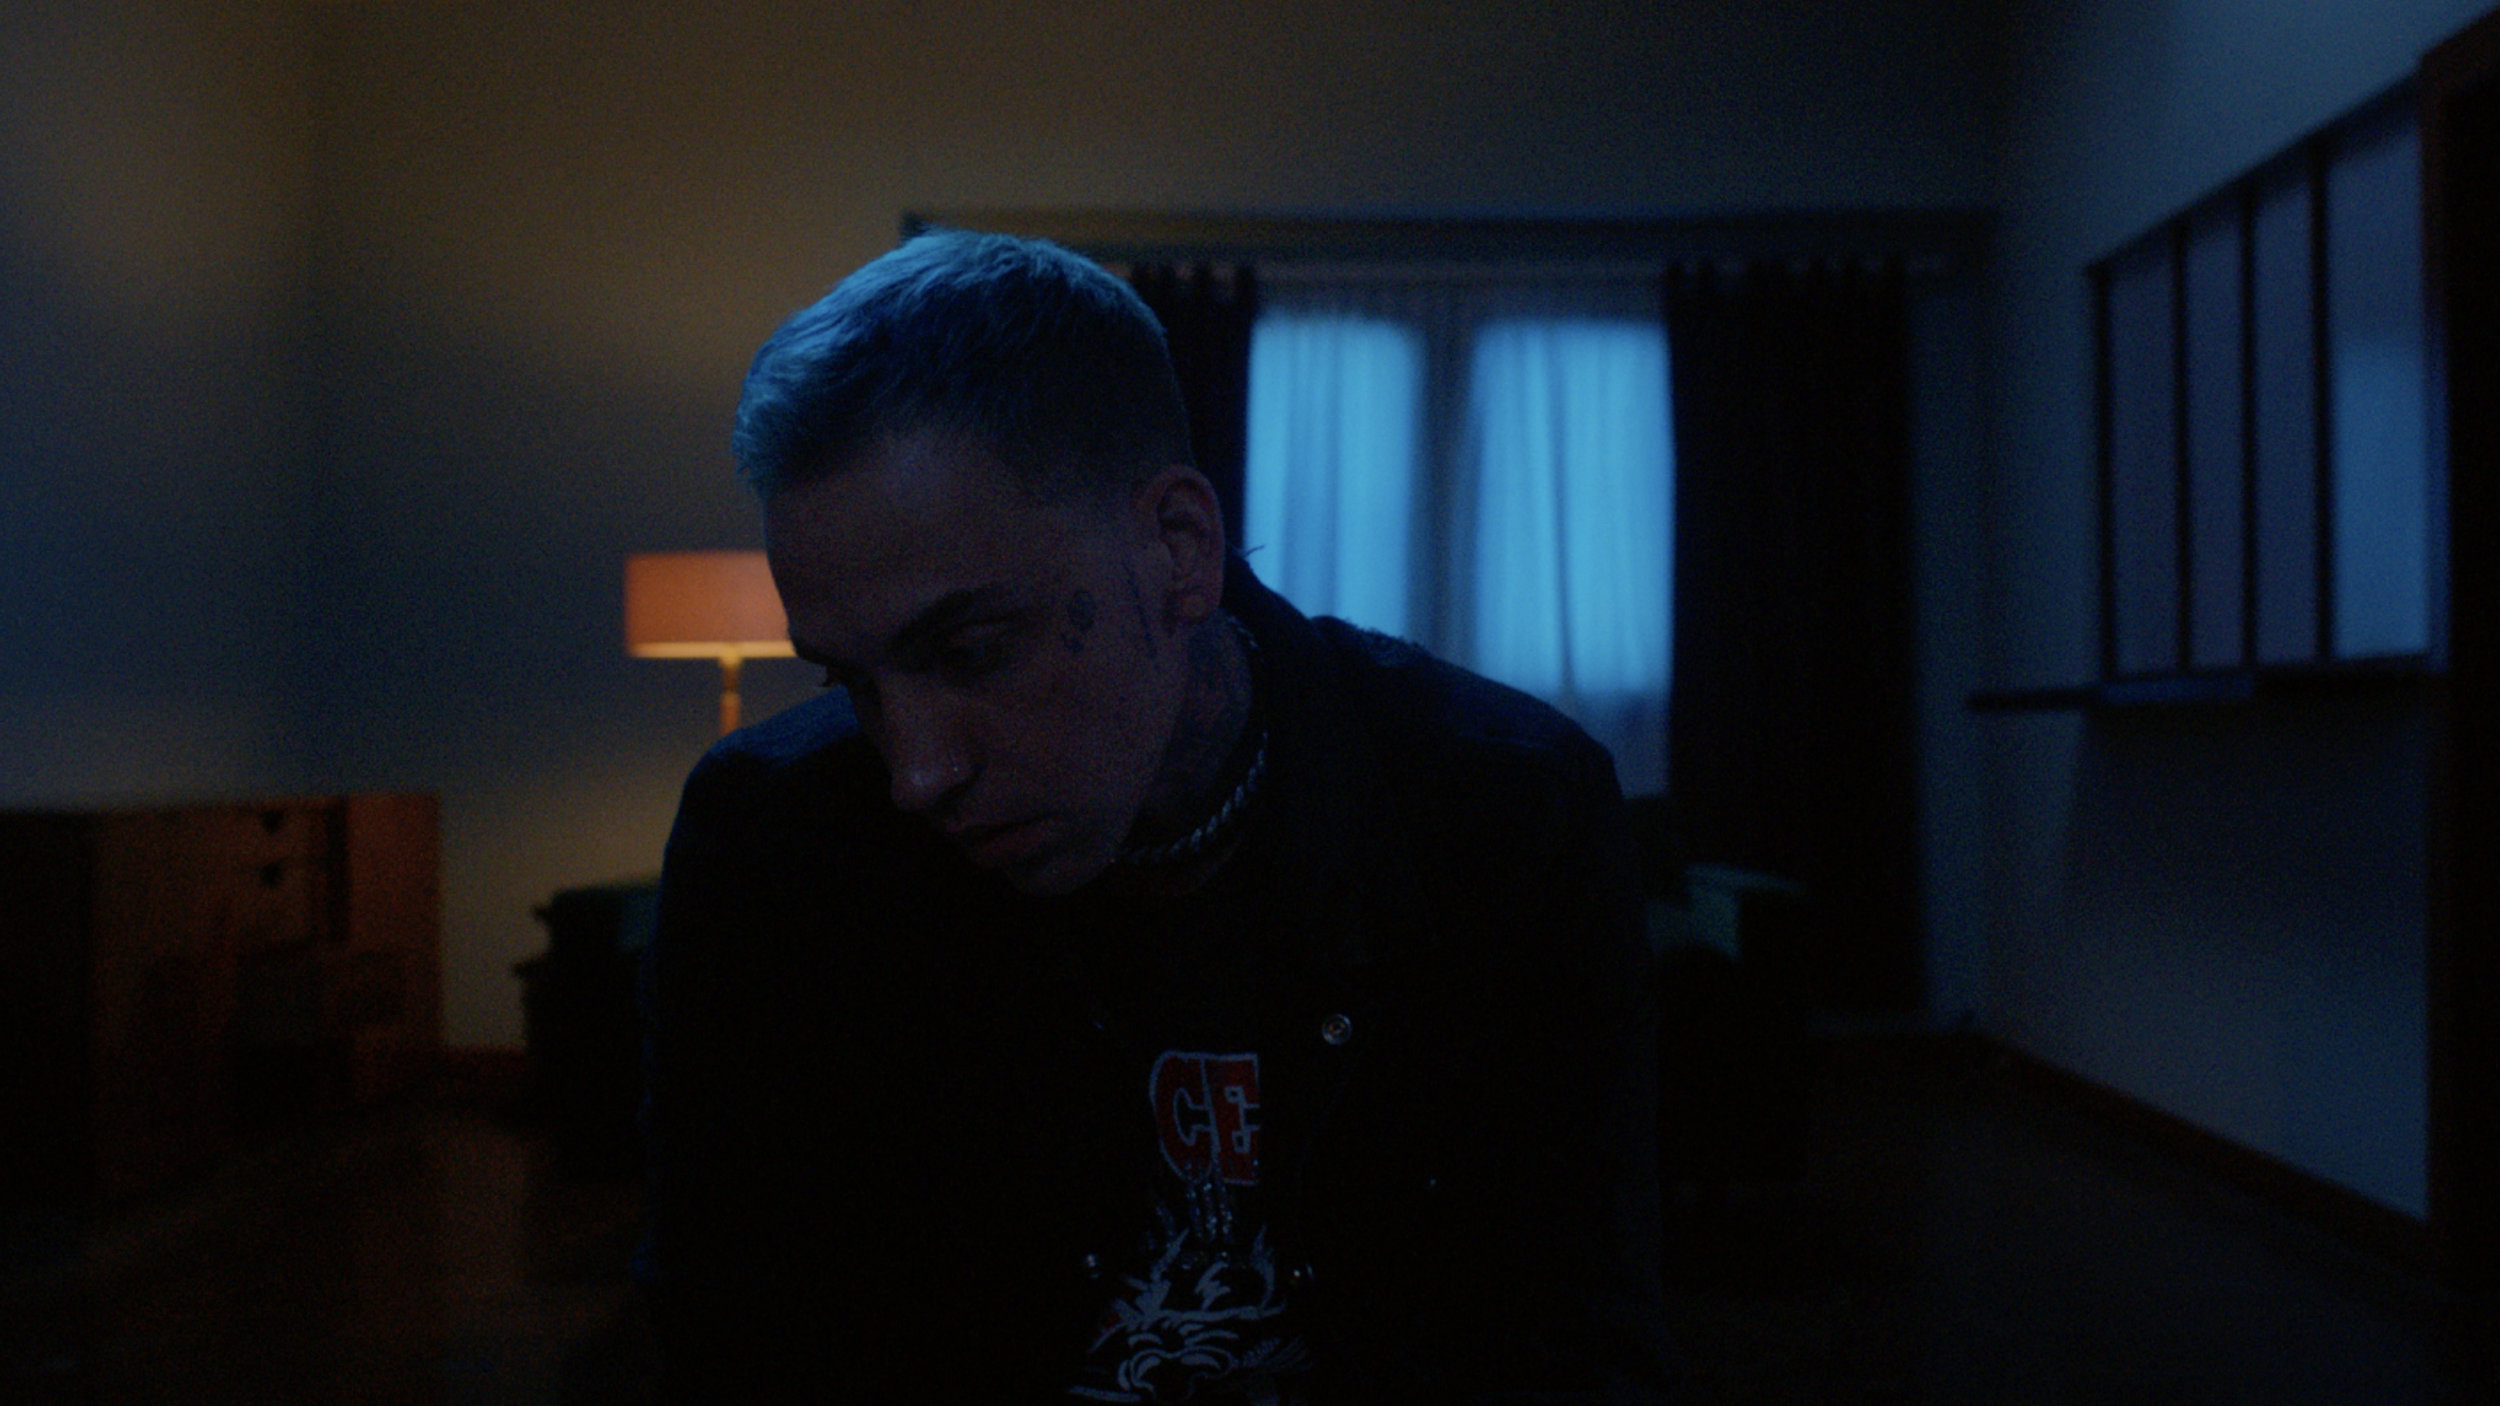 Blackbear :: 1 Sided Love. 2019. Editor. Directed by Malia James.